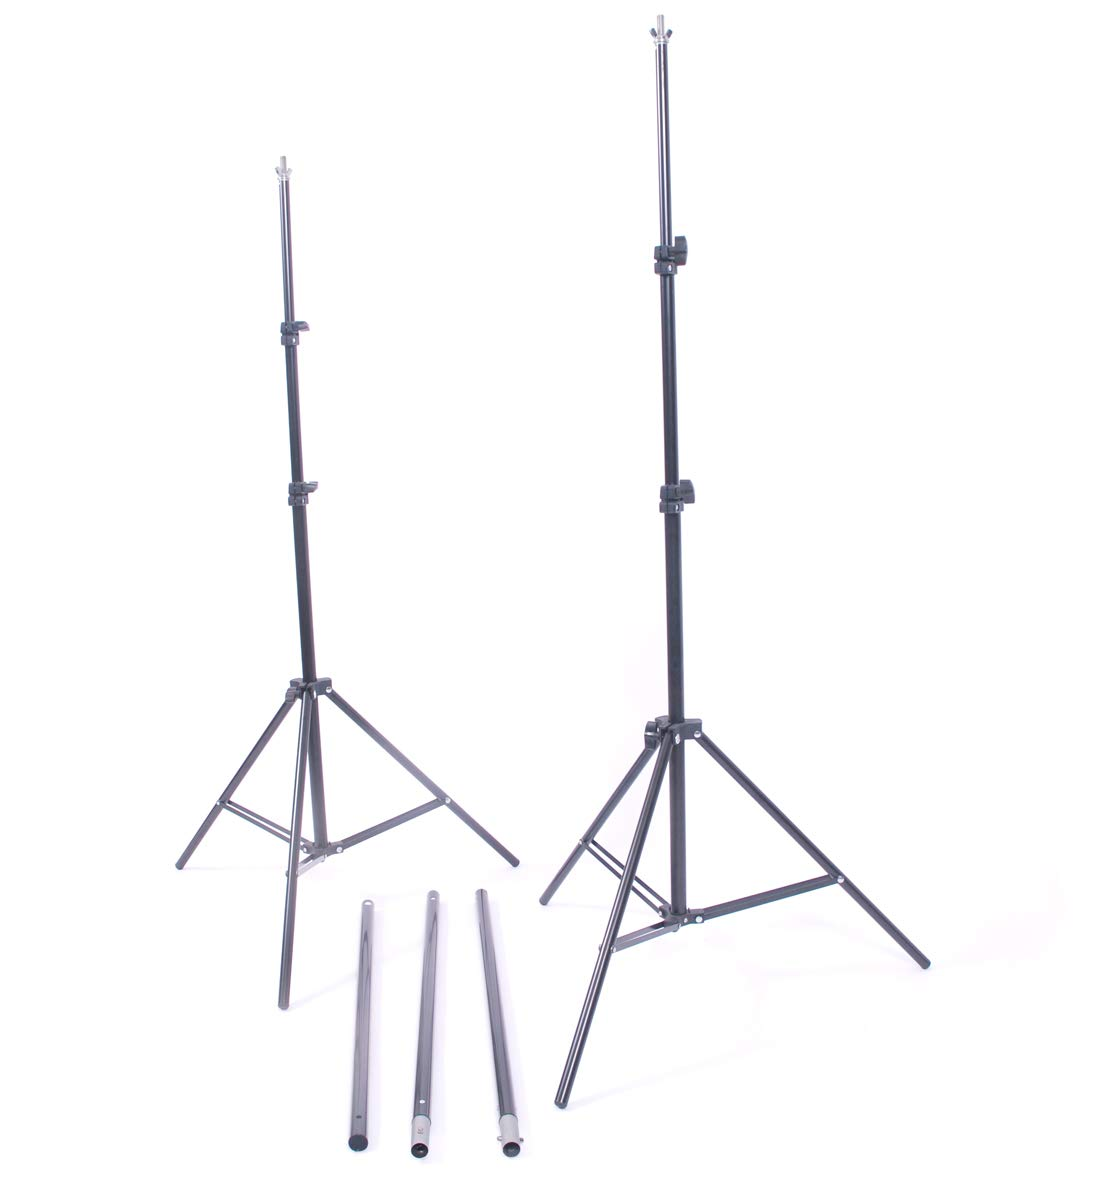 NiuBea Studio 10Ft Adjustable Background Stand Backdrop Support System for Photo Video by Niubea (Image #3)